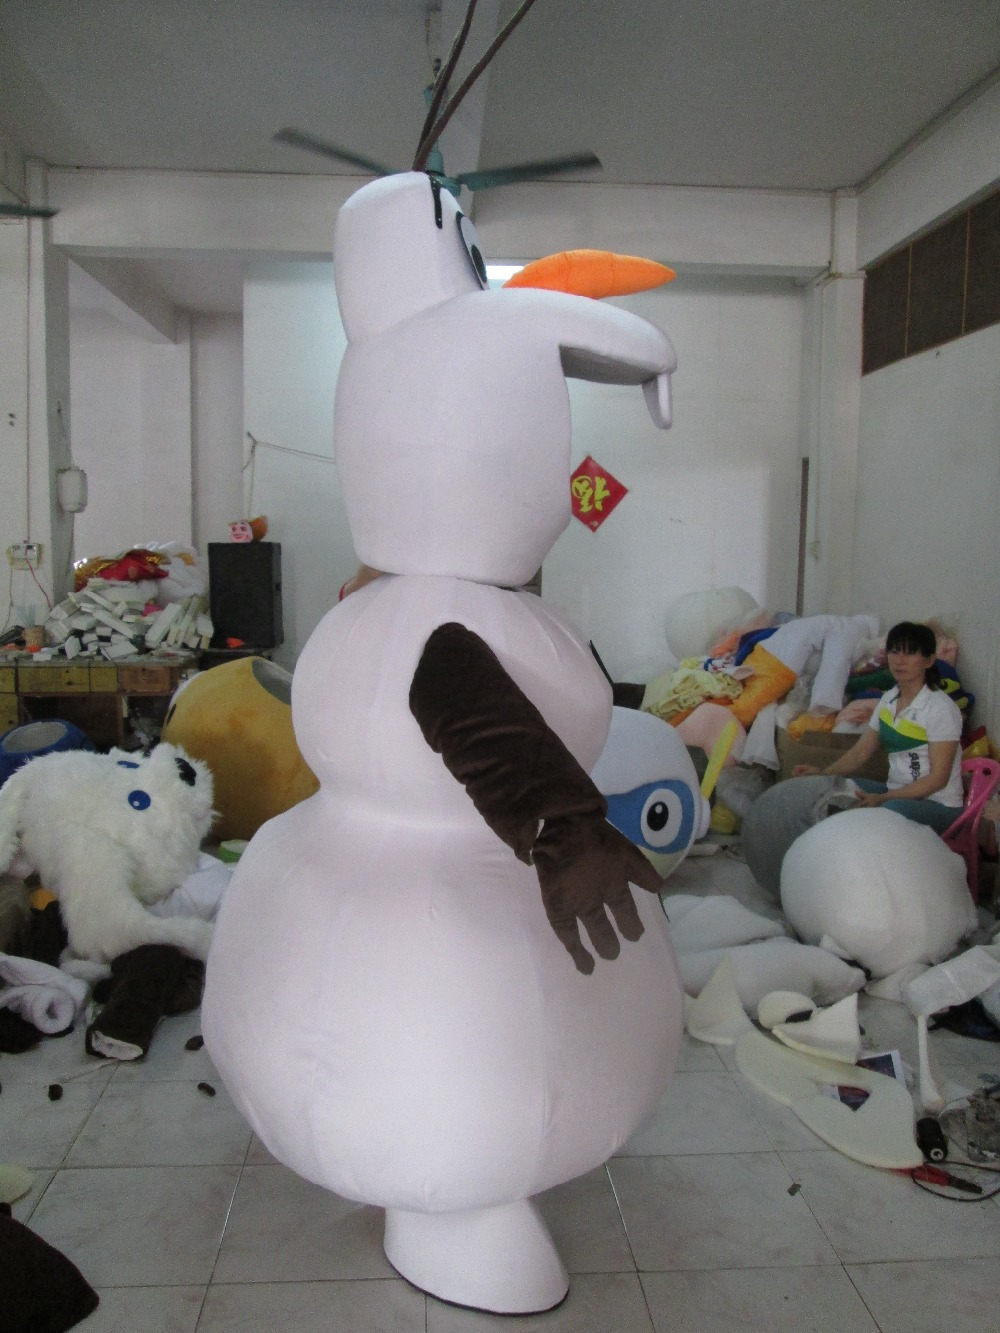 costume bonhomme de neige olaf reine des neiges cosplay deguisement mascotte ebay. Black Bedroom Furniture Sets. Home Design Ideas